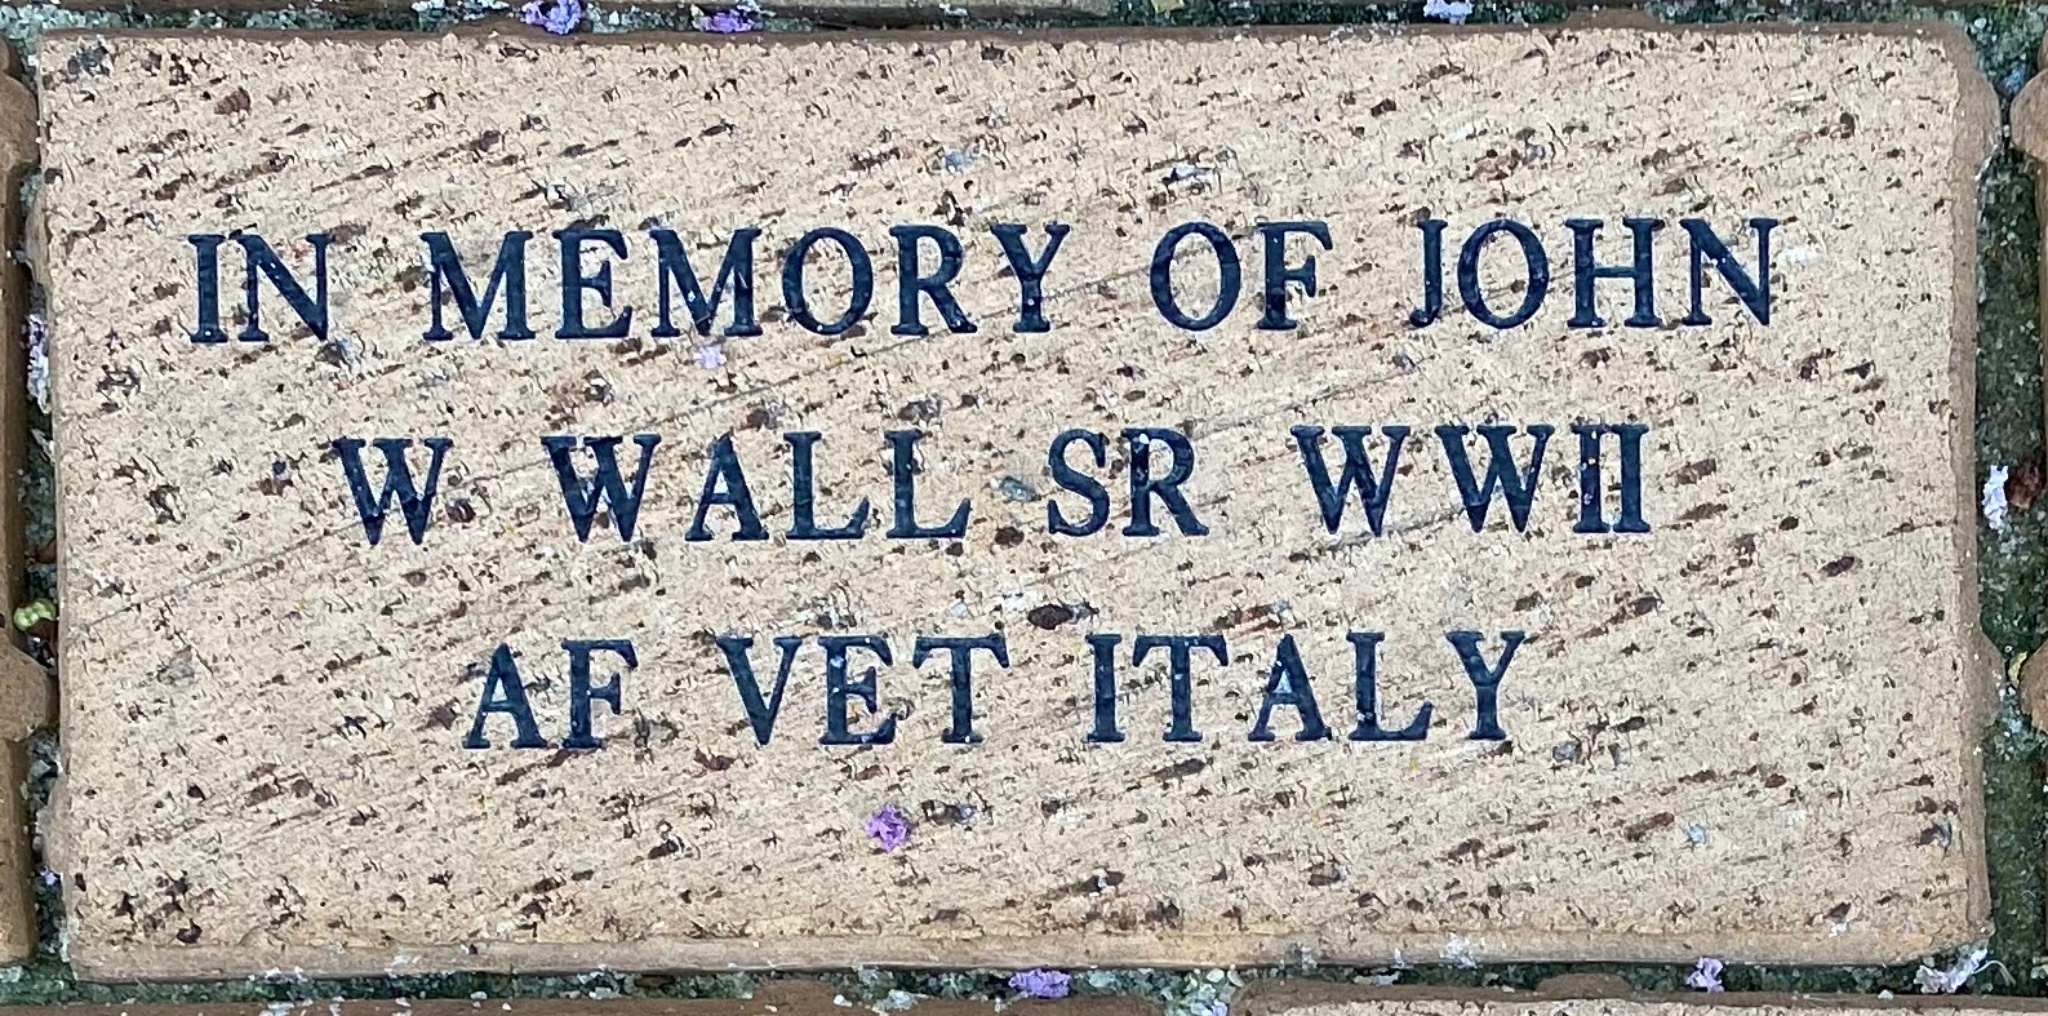 IN MEMORY OF JOHN W. WALL SR WWII AF VET ITALY